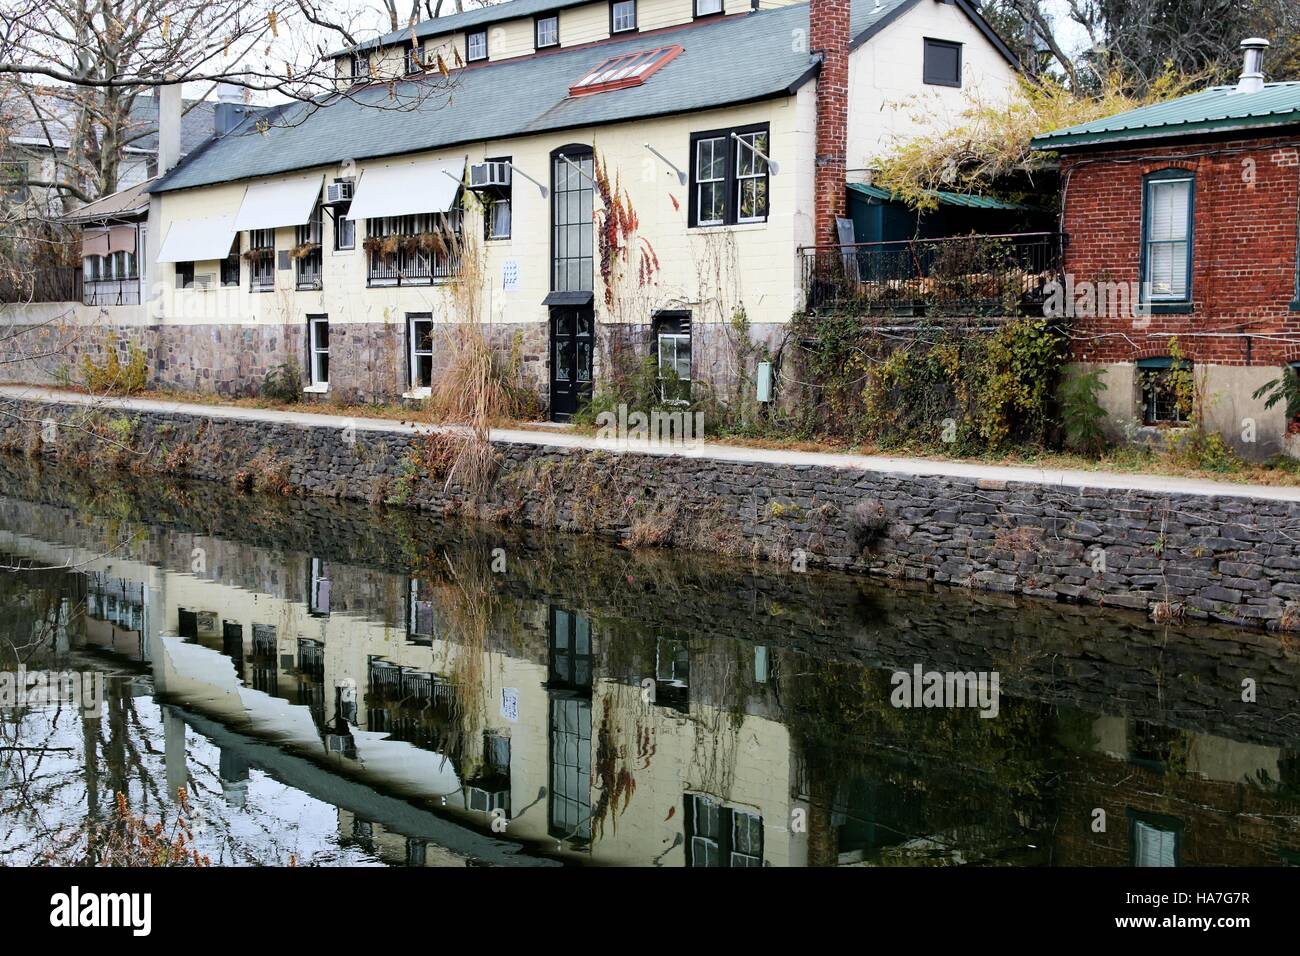 Along the canal. - Stock Image